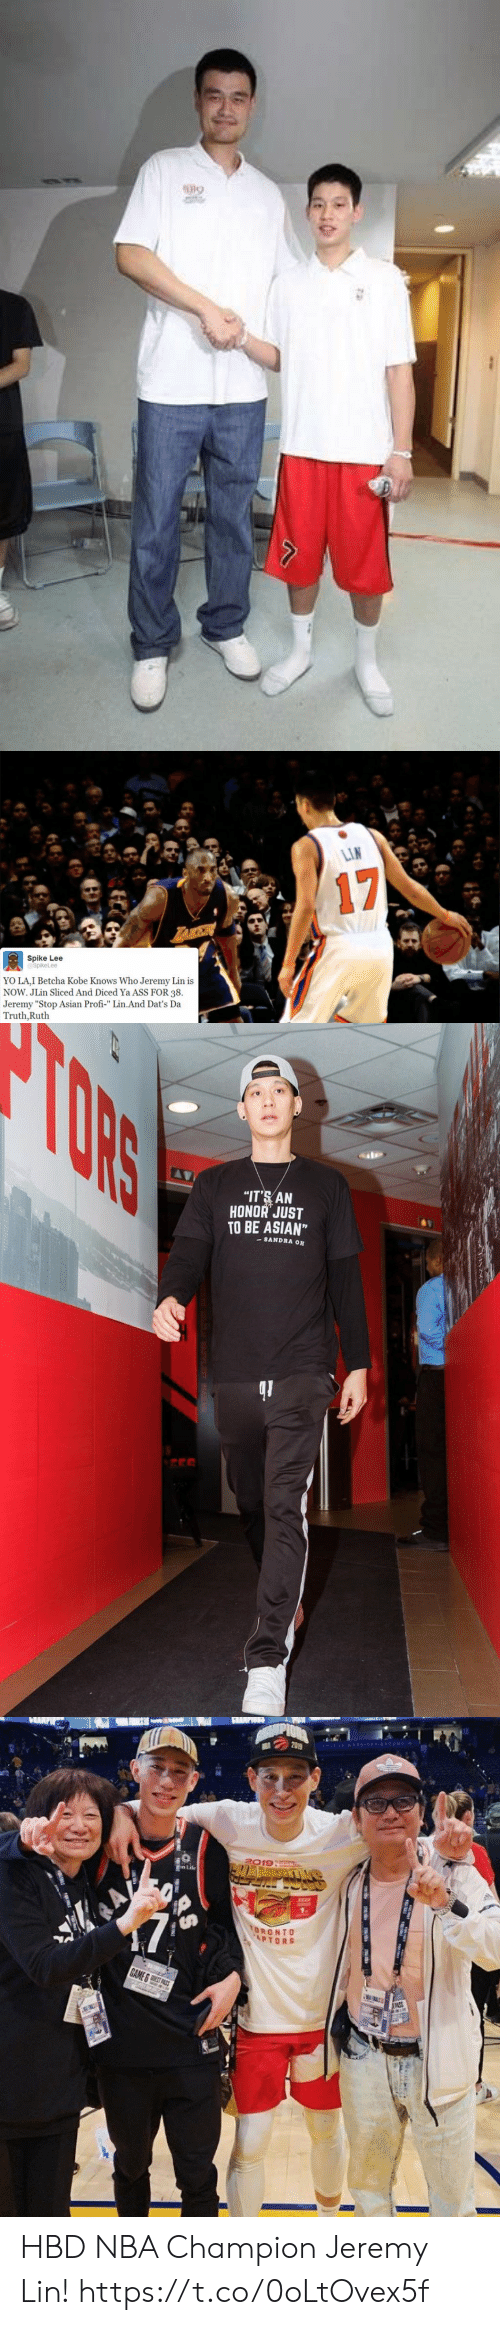 "spike: LIN  17  LAKEA  Spike Lee  @SpikeLee  YO LA,I Betcha Kobe Knows Who Jeremy Lin is  NOW. JLin Sliced And Diced Ya ASS FOR 38  Jeremy ""Stop Asian Profi-"" Lin.And Dat's Da  Truth,Ruth  HB   TORS  ""IT'S AN  HONOR JUST  TO BE ASIAN""  SANDRA OH   PIDNA  3019  প  TORONTO  APTORS  GAME &S S  APASS HBD NBA Champion Jeremy Lin! https://t.co/0oLtOvex5f"